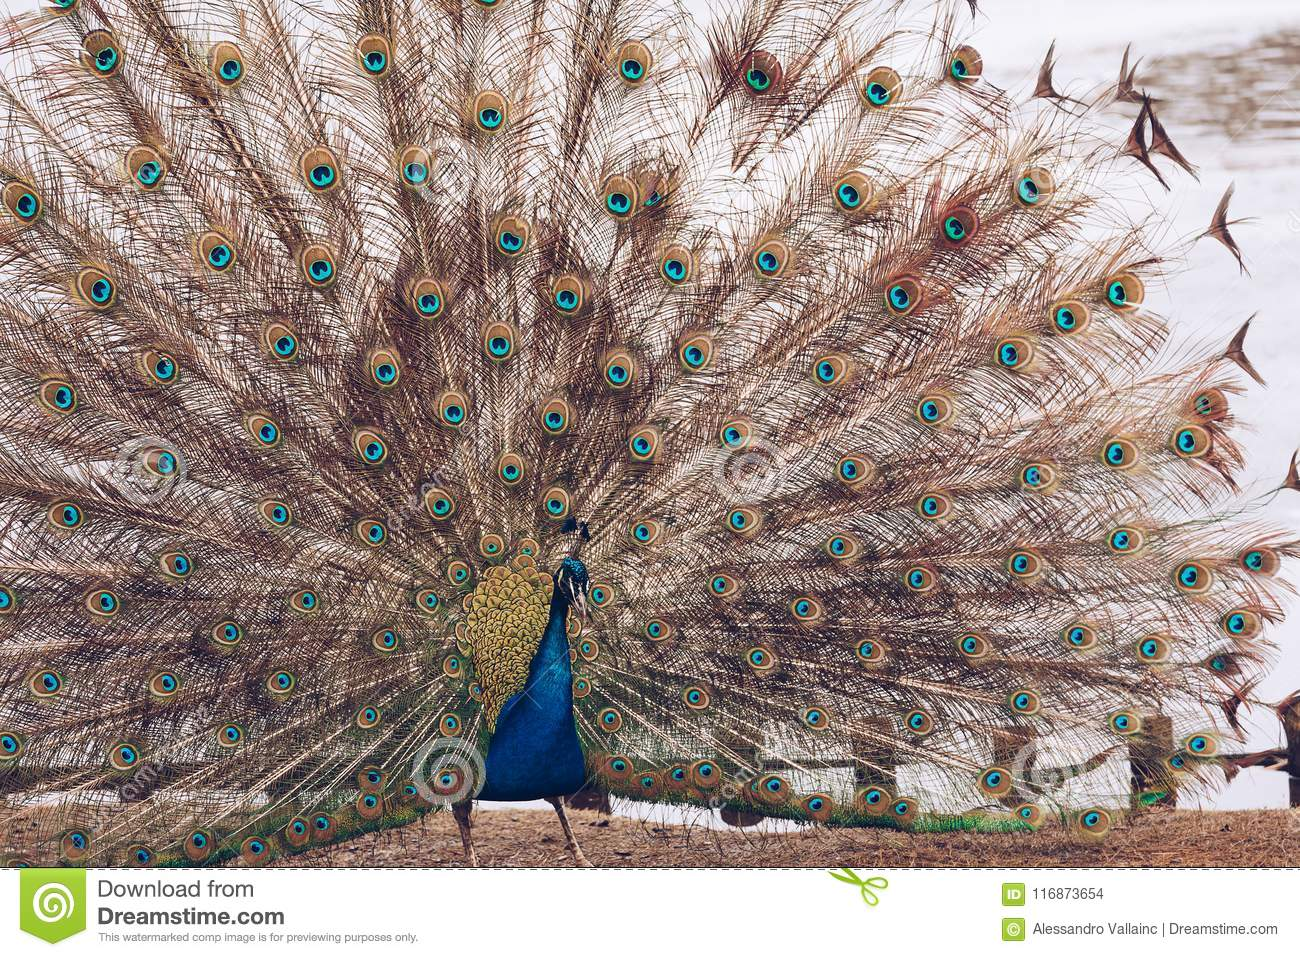 Peacock in Lazienki or Royal Baths park in Warsaw in Poland